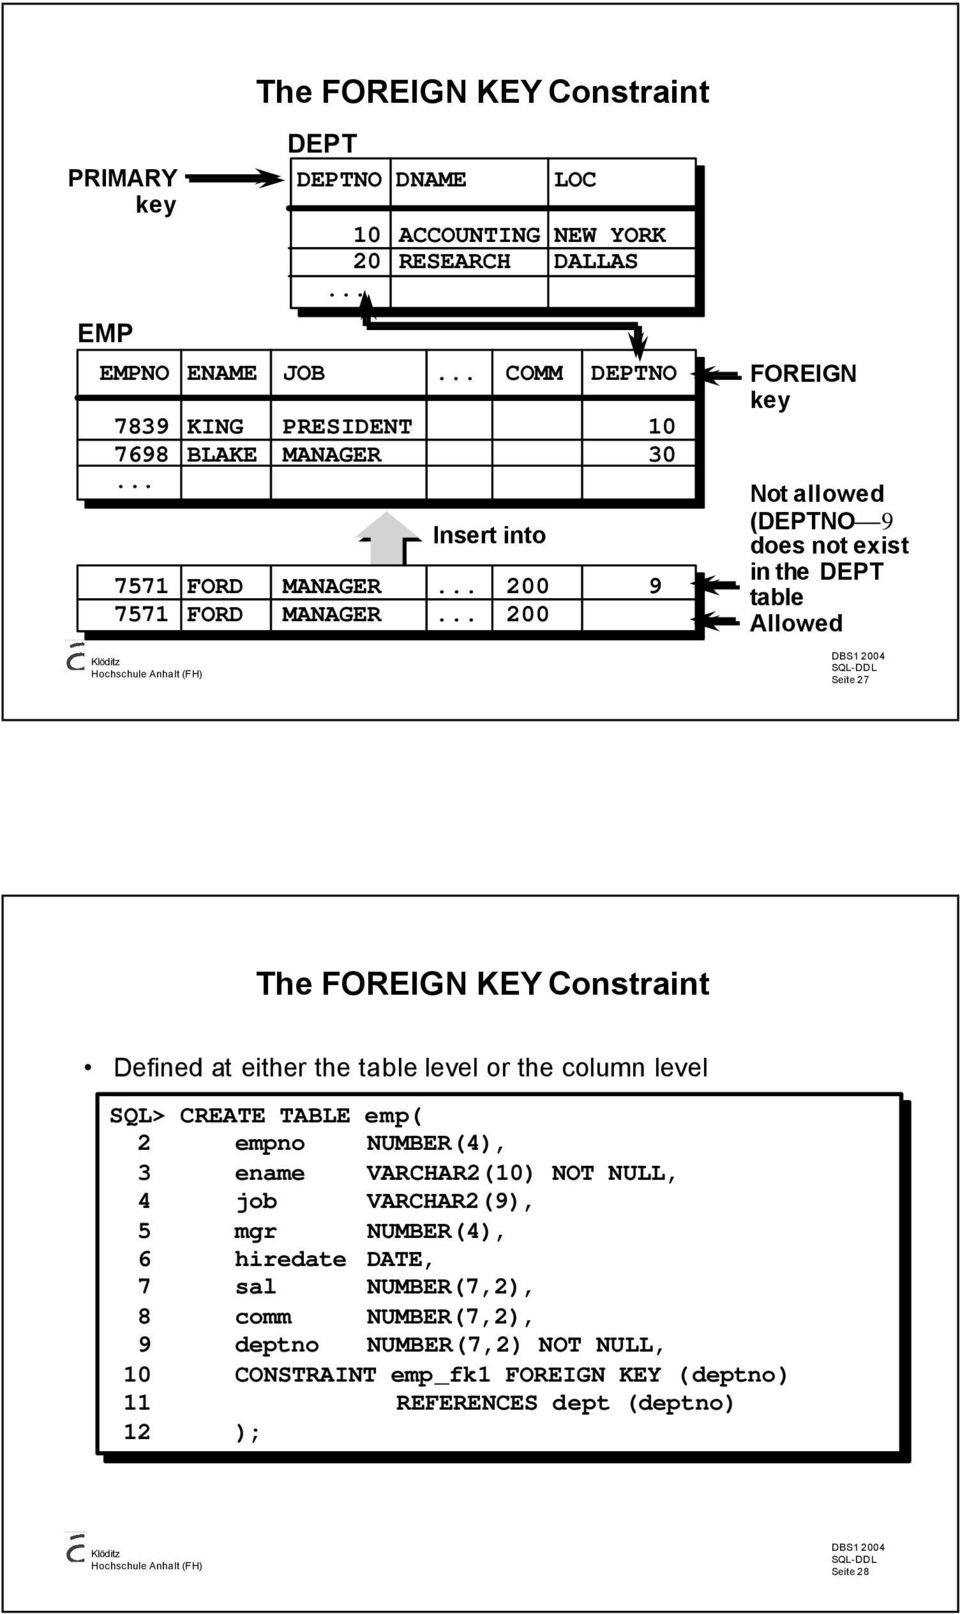 .. 200 FOREIGN key Not allowed (DEPTNO 9 does not exist in the DEPT table Allowed Seite 27 The FOREIGN KEY Constraint Defined at either the table level or the column level SQL>